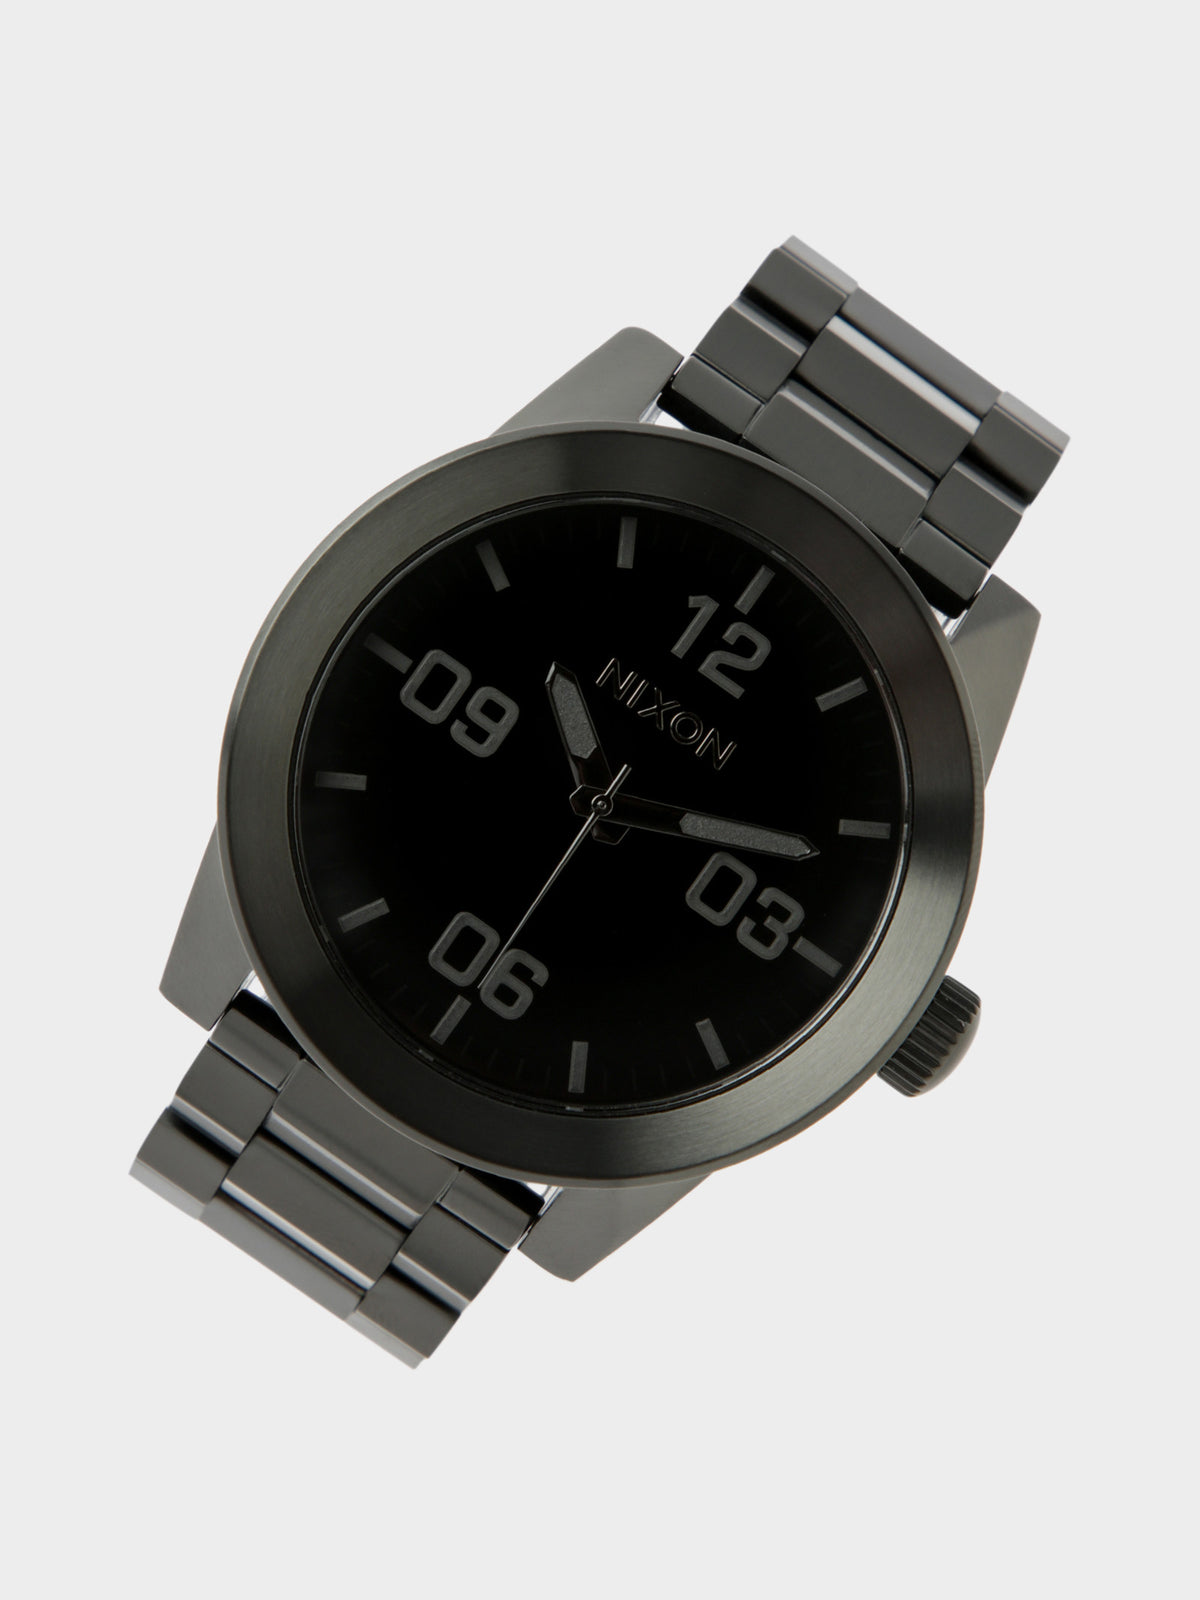 Corporal Stainless Steel Watch in All Black